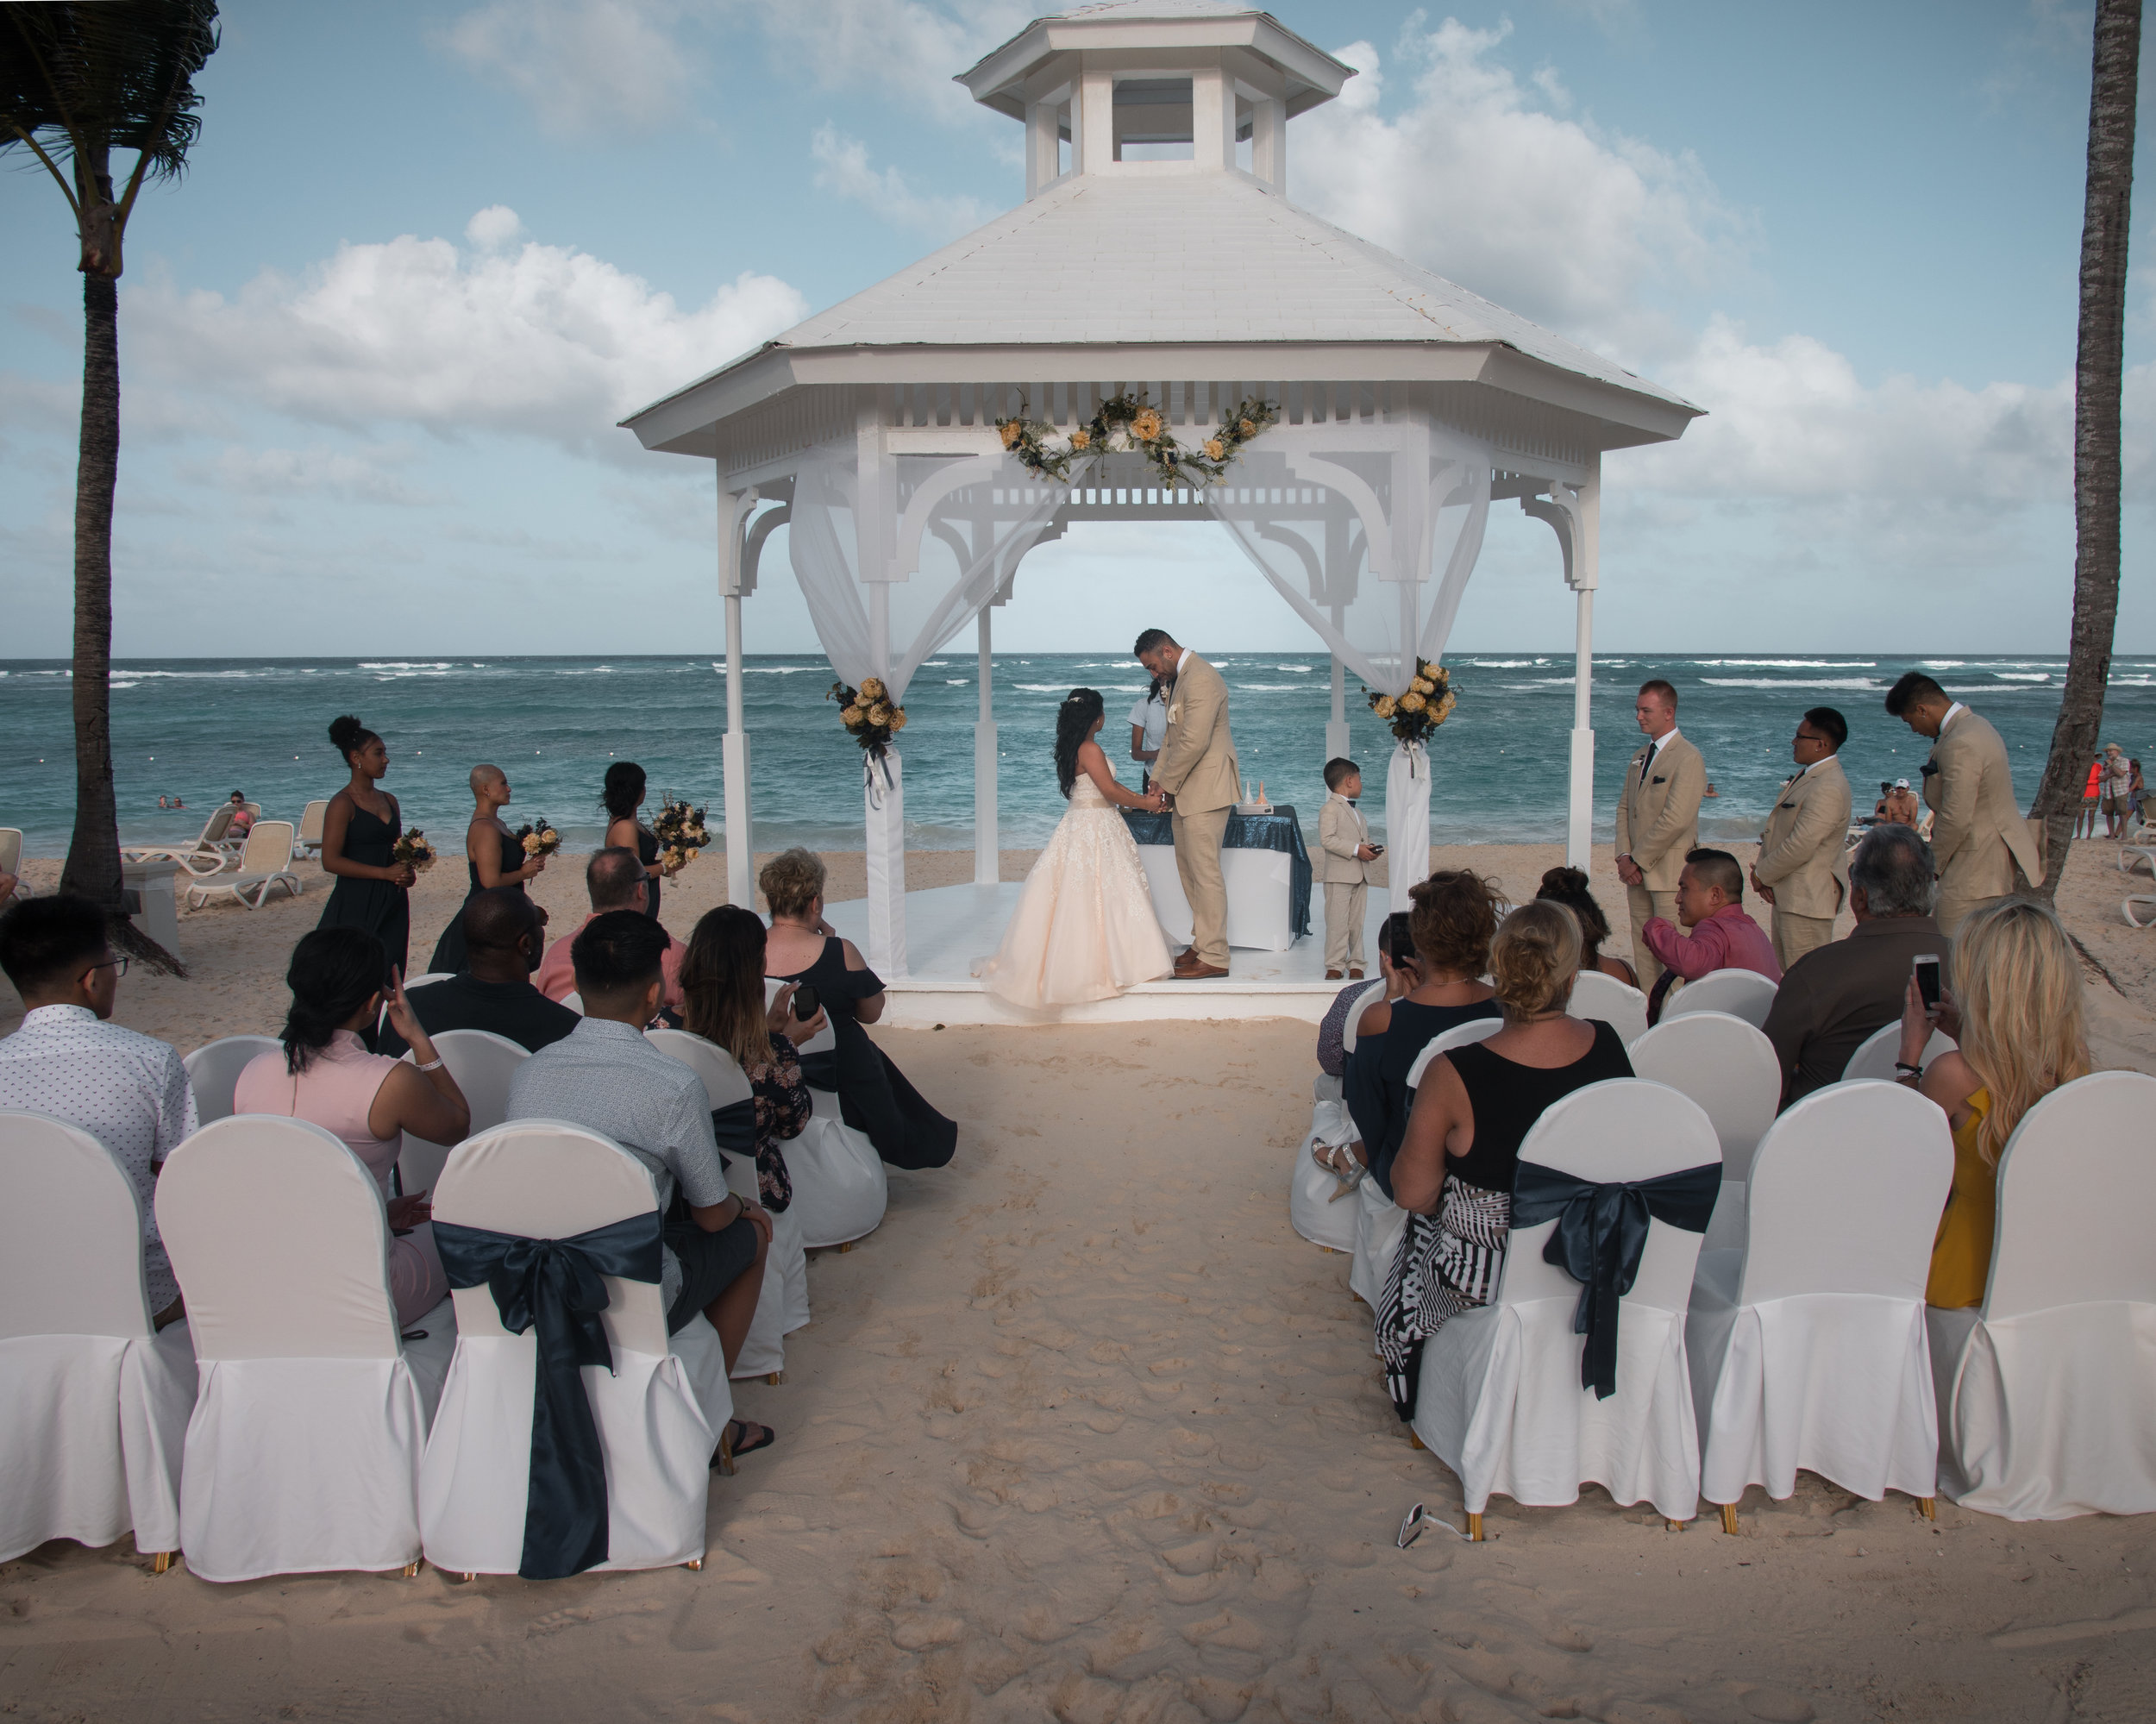 Beautiful Beach Ceremony at the Majestic Elegance resort in the Punta Cana Dominican Republic